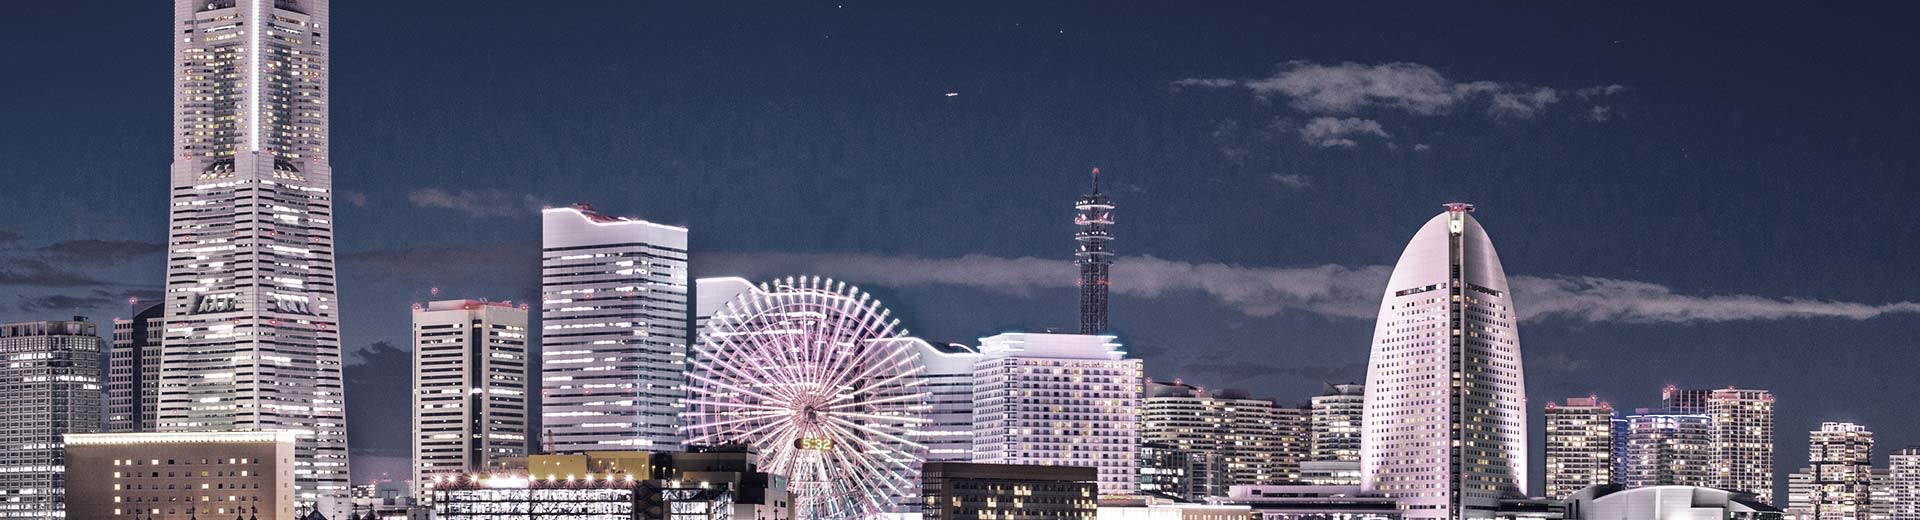 A row of modern skyscrapers at night in Yokohama light up the dark, with an irreverent Ferris Wheel in the foreground